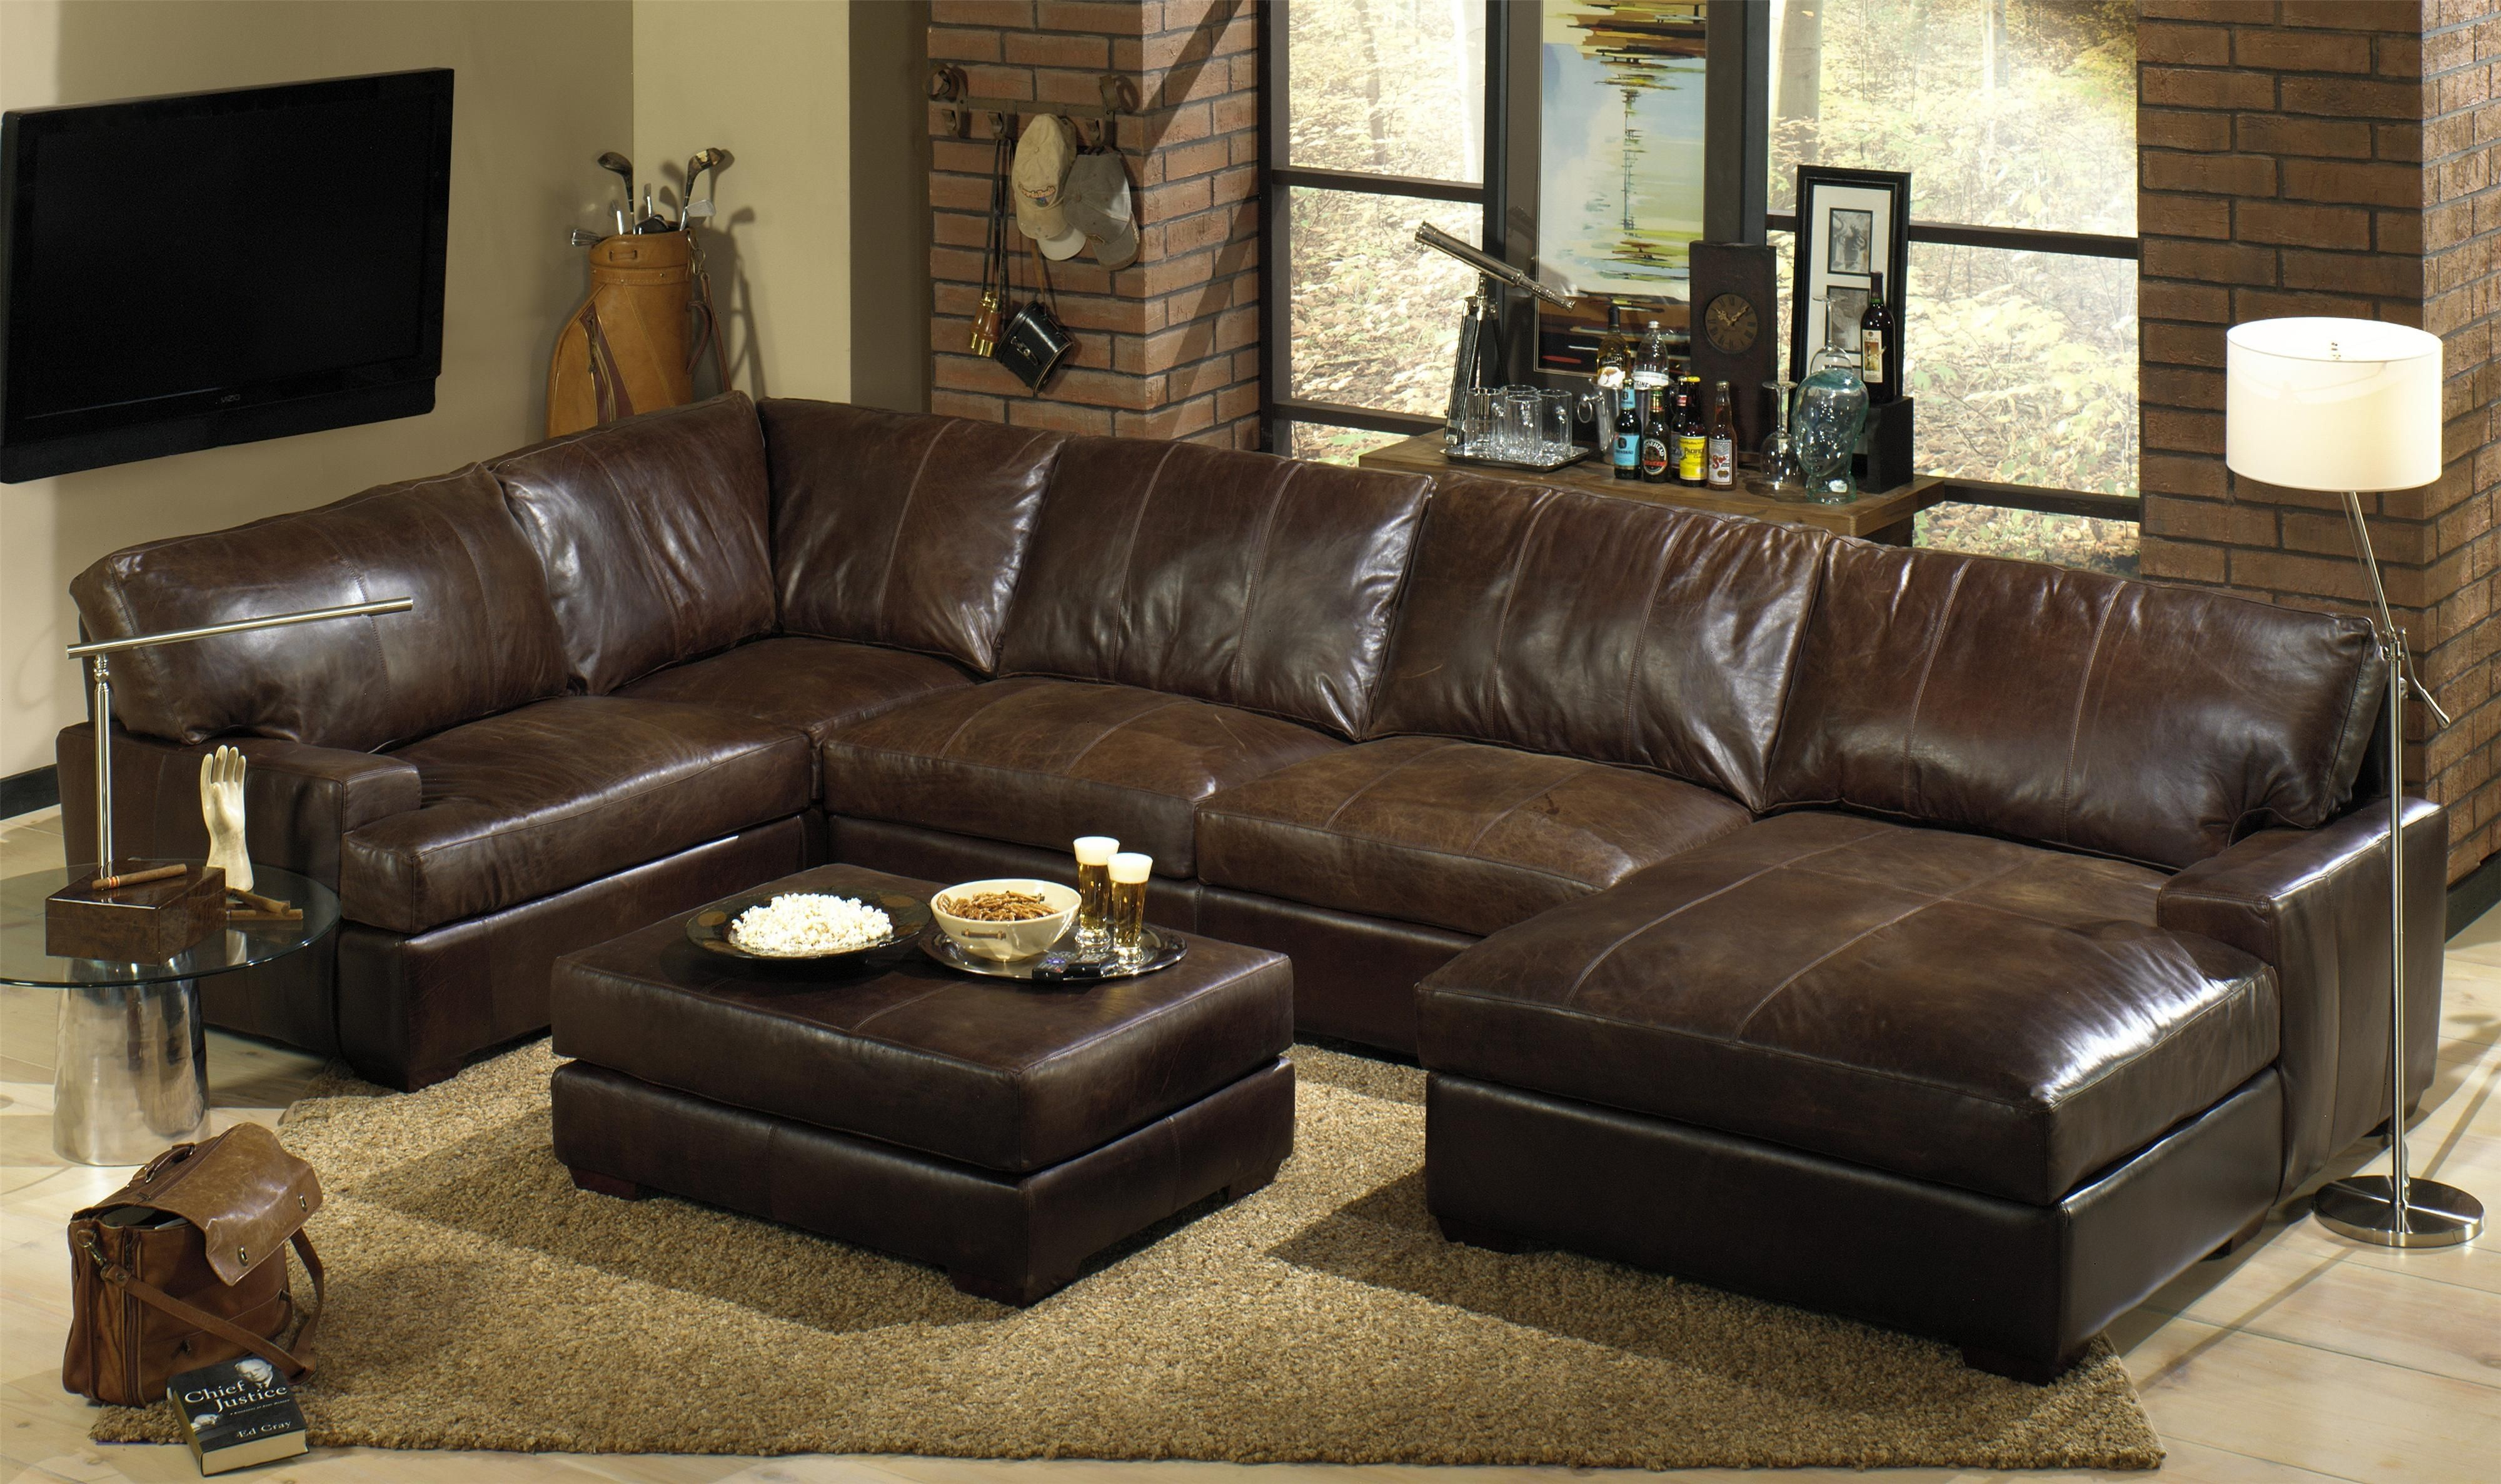 Most Comfortable Leather Sectional Sofa Sectional Sofa With Chaise Sectional Sofa With Recliner Leather Sectional Sofas